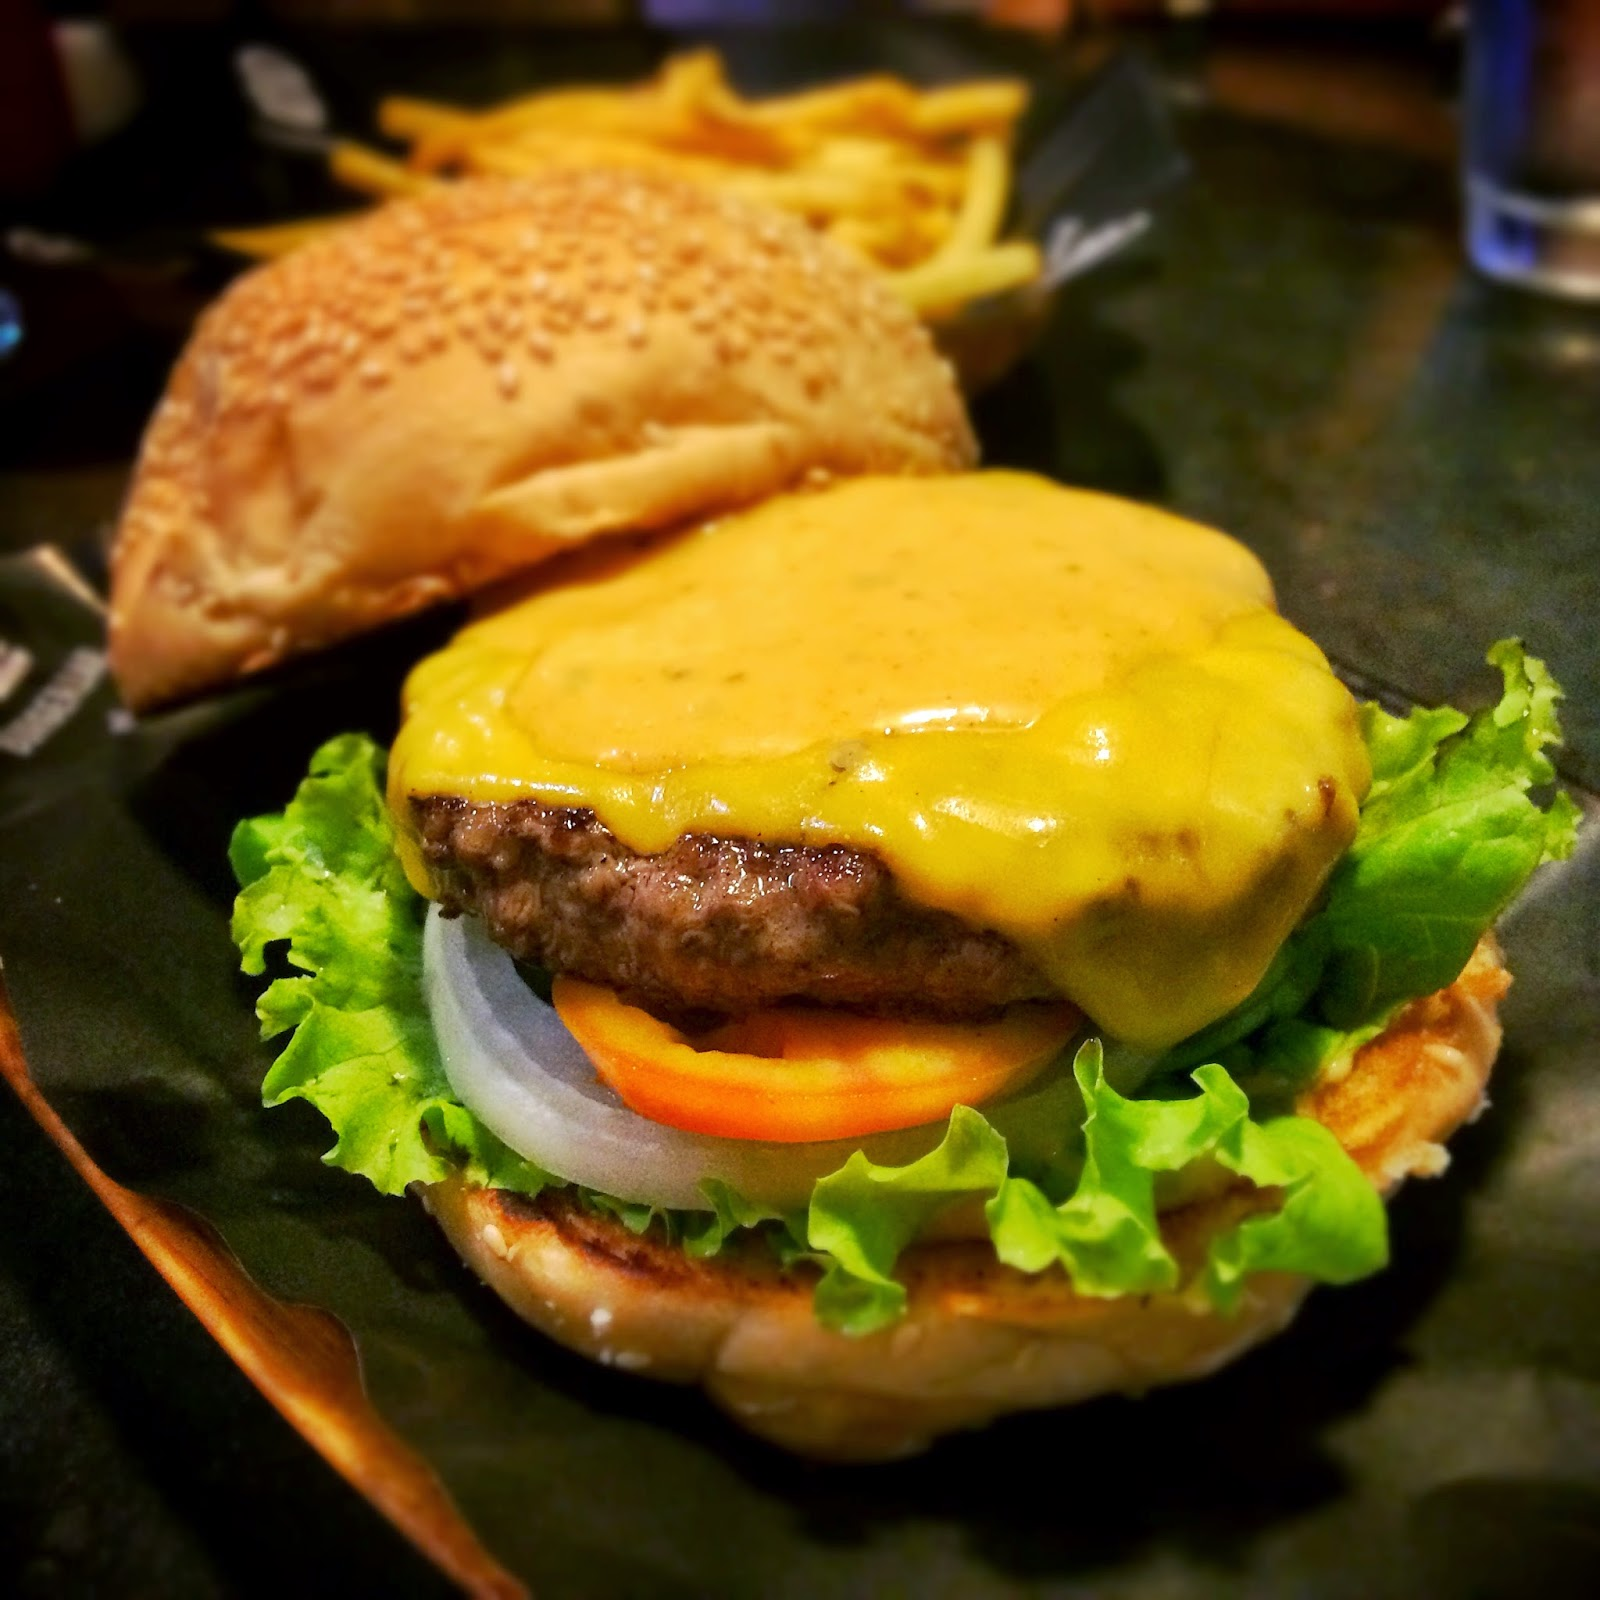 Eat Pray Make Love: Burger Bar, Round 2 3/5 (looloo)